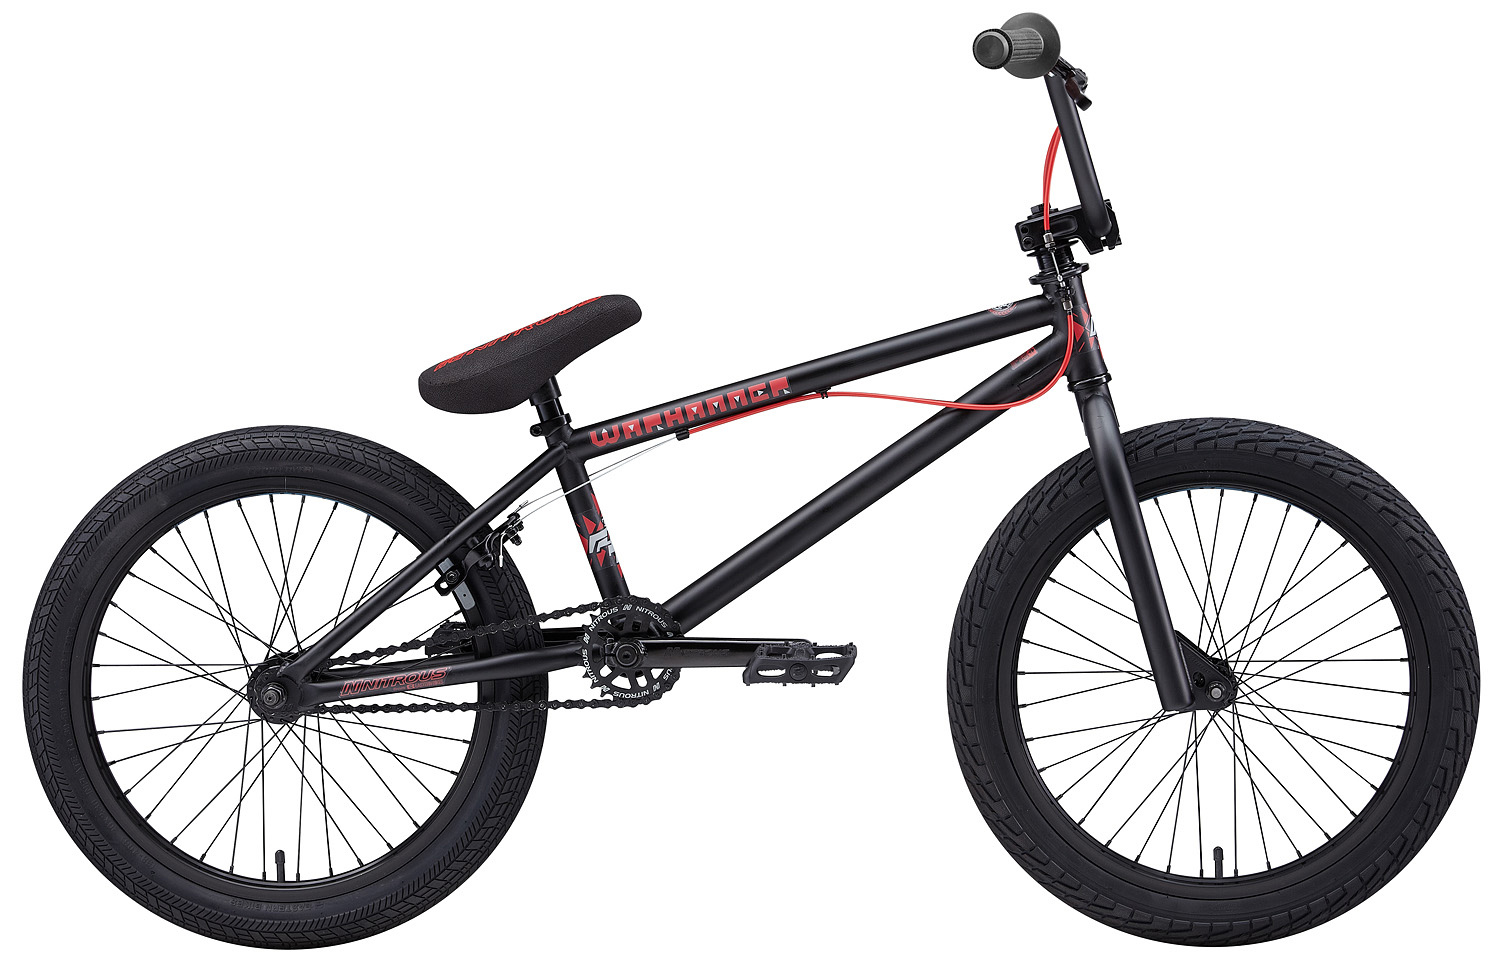 "BMX Key Features of the Eastern Warhammer BMX Bike 20"": WEIGHT // 26.5 lbs. COLORS // Black/Red, White/Black TOP TUBE SIZE // 20.25"" GEARING // 25/9 Micro-drive FRAME // Warhammer Hi-Tensile Strength 1020 Steel Frame w/ lifetime upgrade policy** FORK // Warhammer Hi-Tensile Strength 1020 Steel BARS // 8.0""x 28.5"" , 1 Degree Upsweep, 12 Degree Backsweep HEADSET // 1-1/8"" Aheadset BB // American Loose Ball Bearing PEDALS // Eastern Crown pedals GRIPS // Eastern Fuquay Flyer Grip STEM // Forged Alloy Front Load SPROCKET // 25T Steel w/ Nitrous Graphic CRANKS // Nitrous Shifter 175mm tubular chromoly heat-treated 3pc. cranks w/ 8 spline spindle SEAT // Nitrous Logo 1-Piece Seat/Alloy Post Combo TIRES // LHR Multi-Surface , 20"" x 2.20"" FRONT HUB // 36H 3/8"" Loose Ball Bearing REAR HUB // KT/Quando semi-sealed 36H cassette hub. 1-piece 9-tooth chromoly driver, hollow 14mm chromoly axle RIMS // Alloy 36 Hole REAR BRAKES // Forged Alloy U-Brake / 1 into 2 Upper Cable, Dual Lower Cables /Forged Alloy lever, Designed for U-Brakes FREEWHEEL // 9T 1-Piece Chromoly Driver CHAIN // KMC Z510 SEAT CLAMP // Nitrous Locker Forged Alloy Clamp - $299.95"